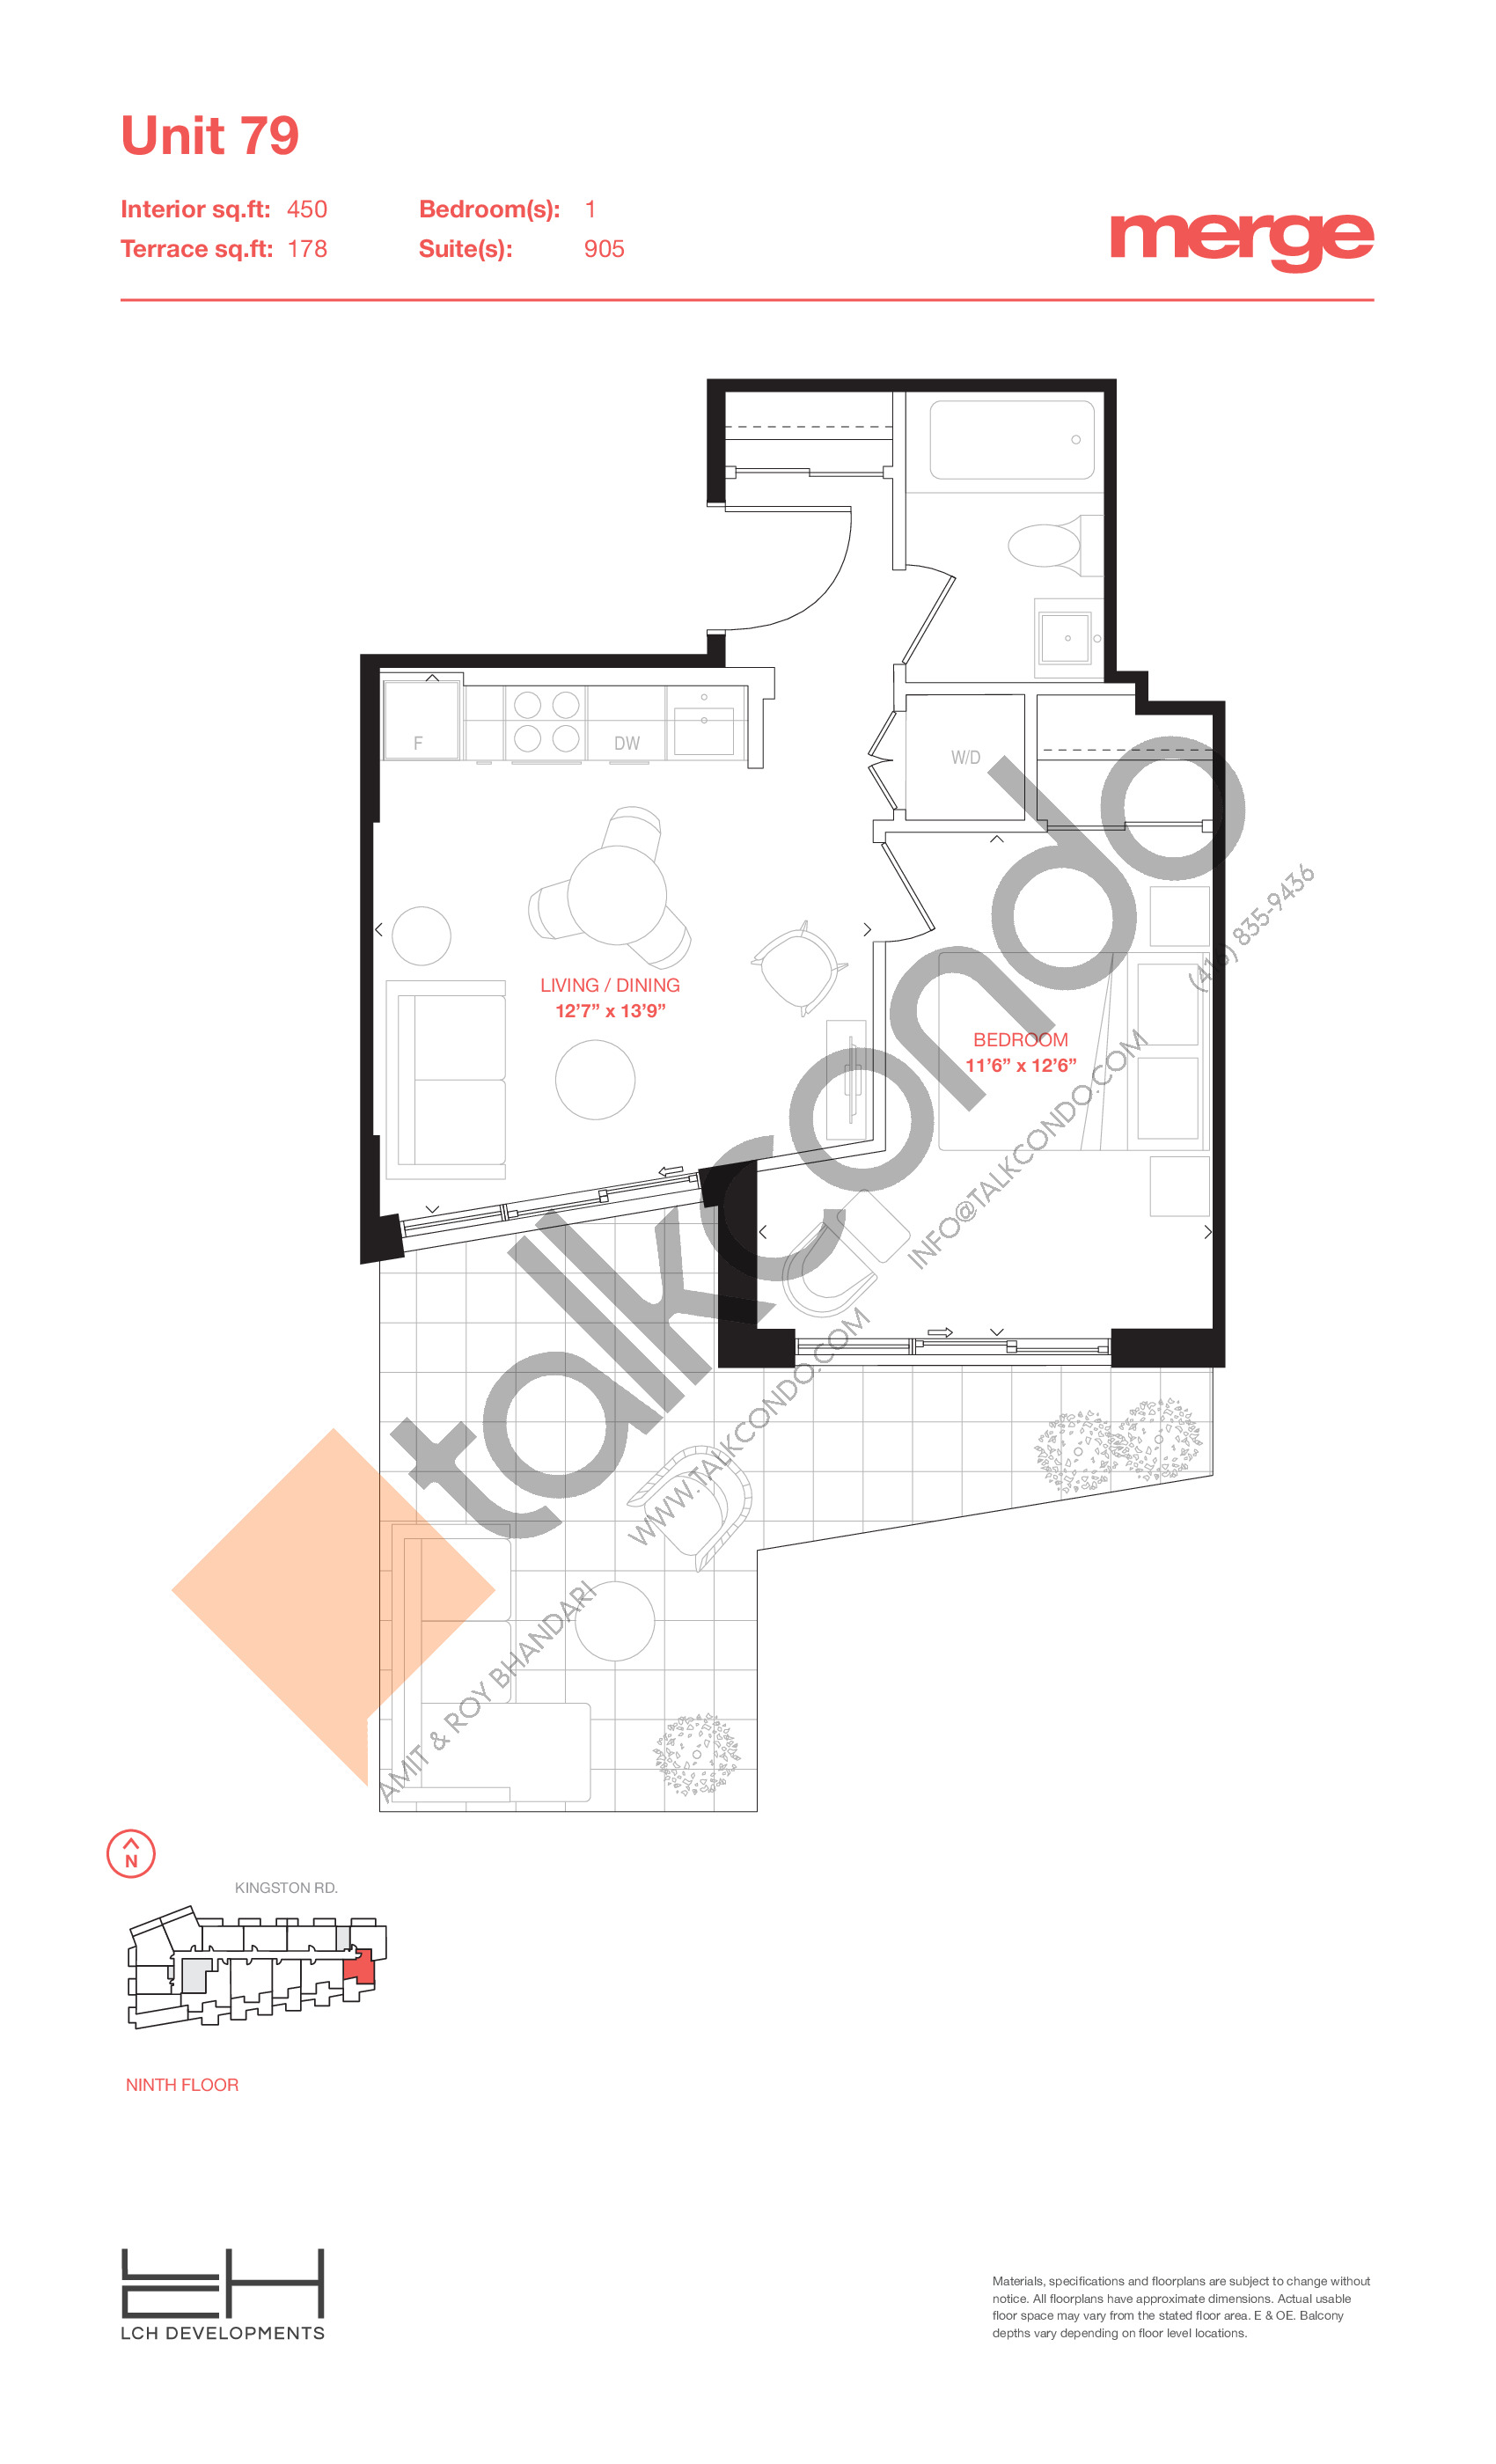 Unit 79 - Terraces Floor Plan at Merge Condos - 450 sq.ft